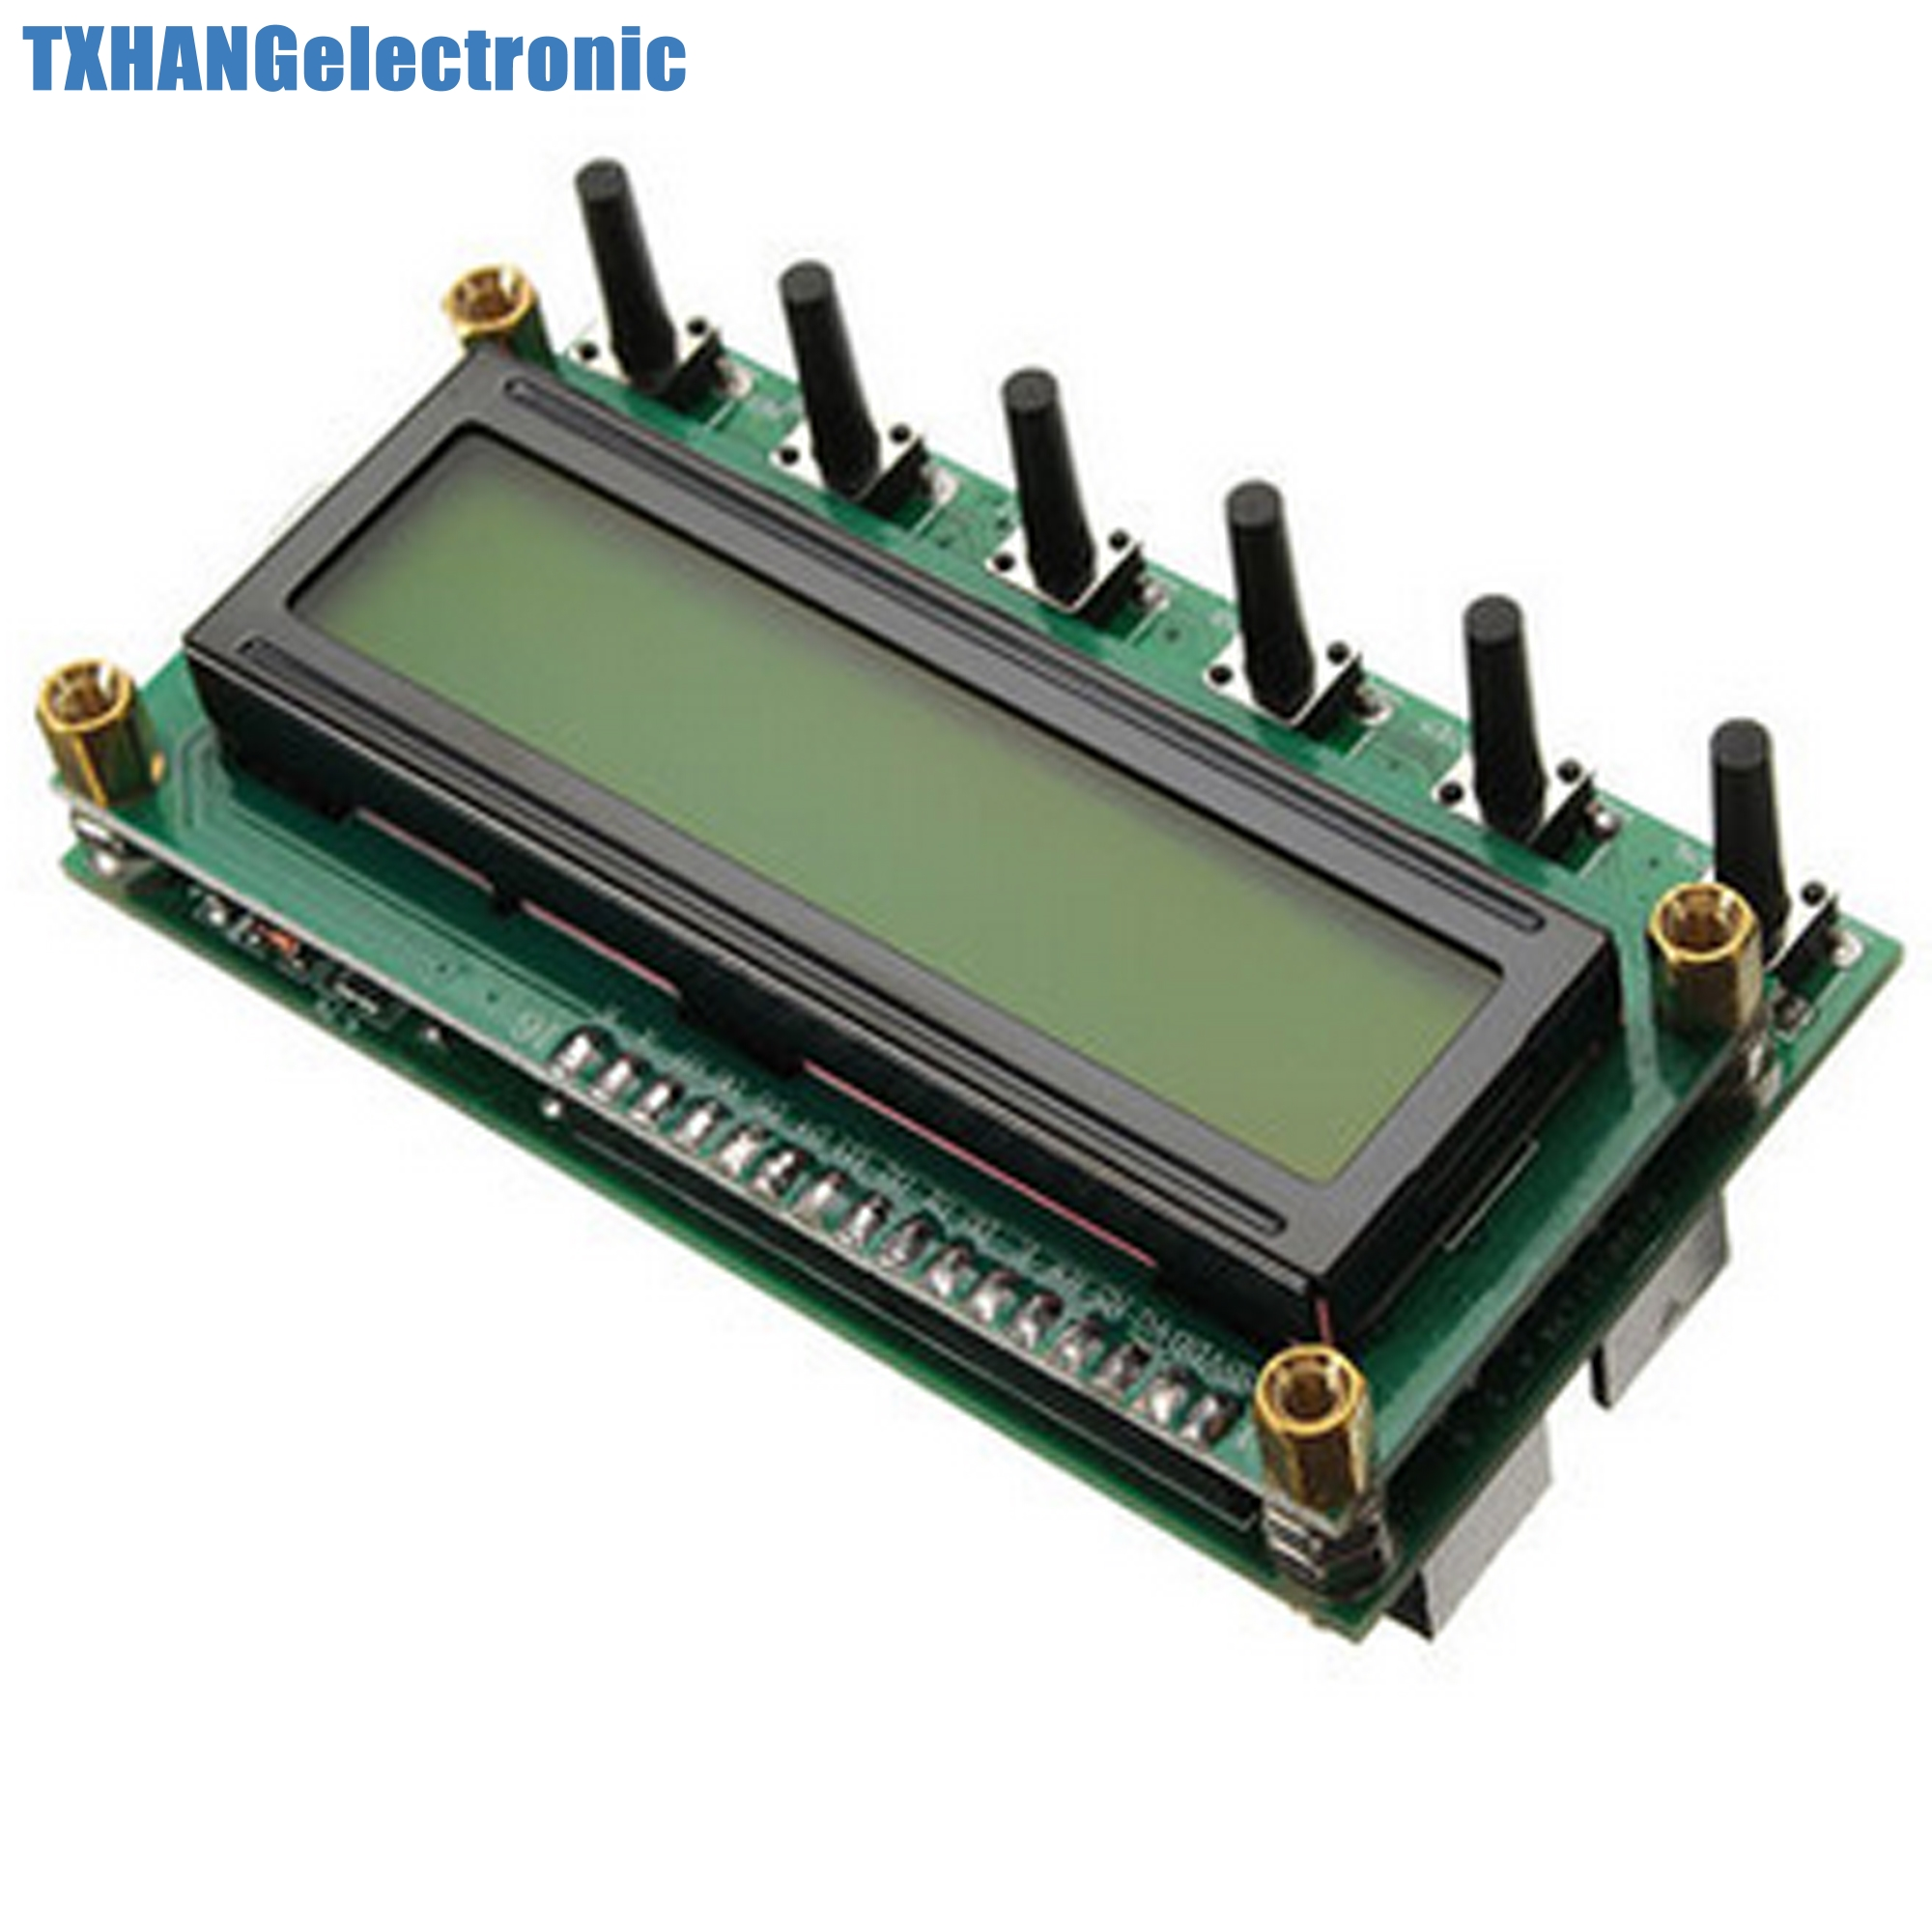 055mhz Dds Signal Generatordirect Digital Synthesis Ham Radio Vfo Circuit Wireless In Integrated Circuits From Electronic Components Supplies On